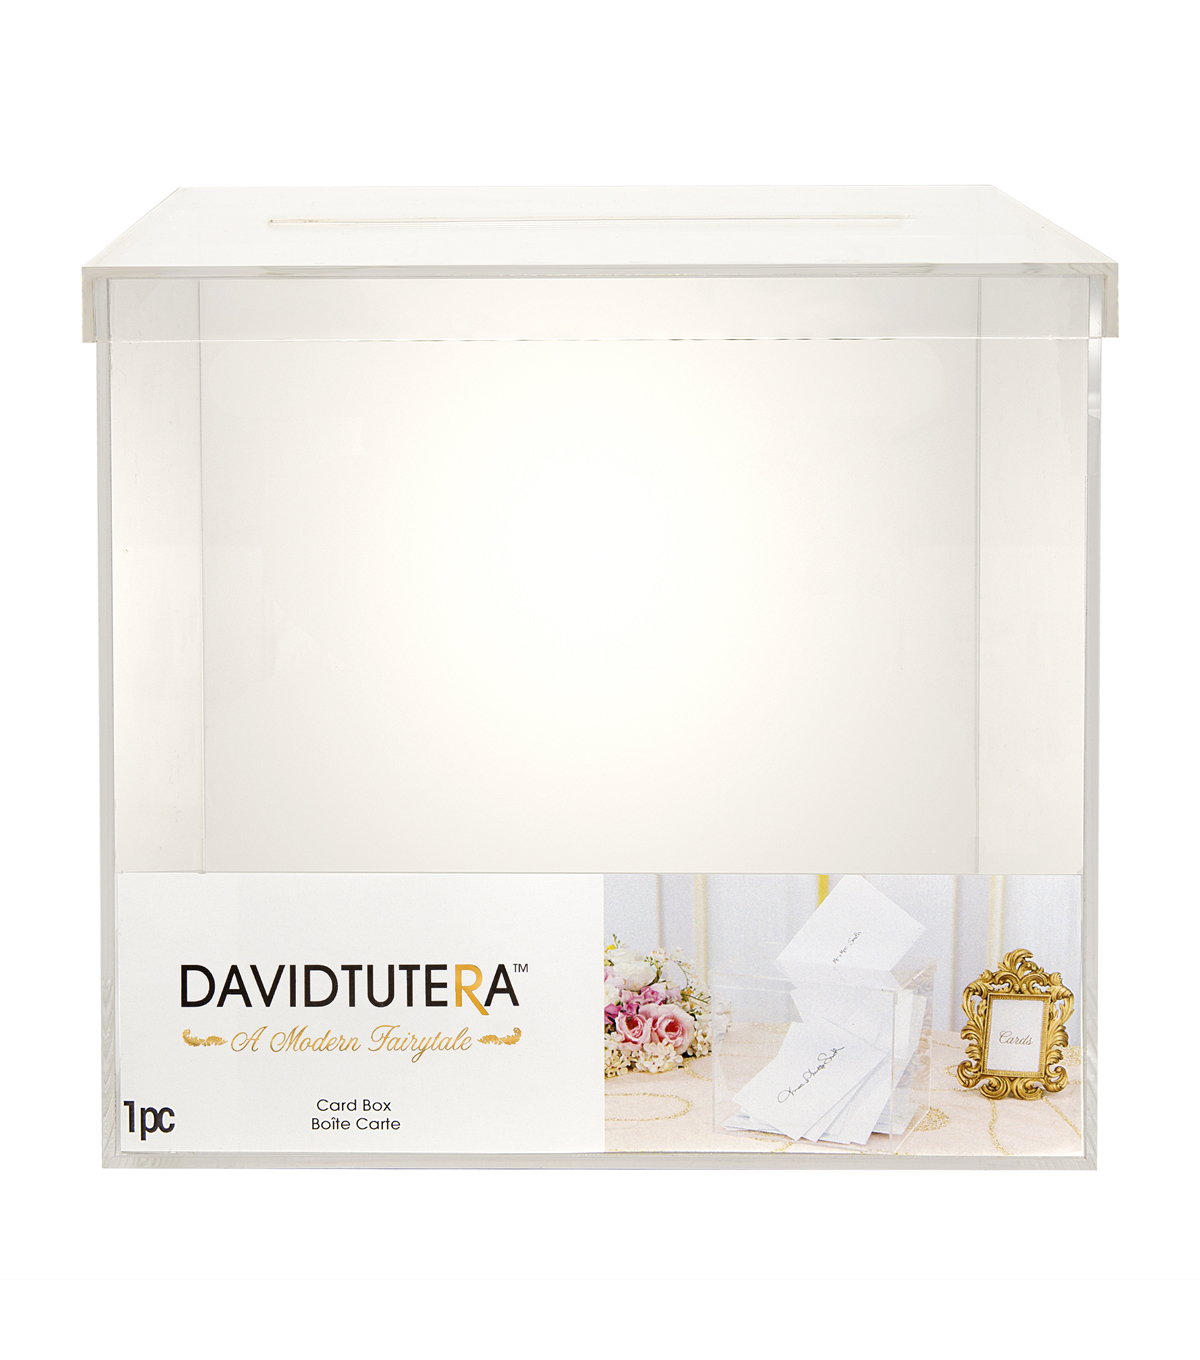 David Tutera Acrylic Card Box with Slit on Lid